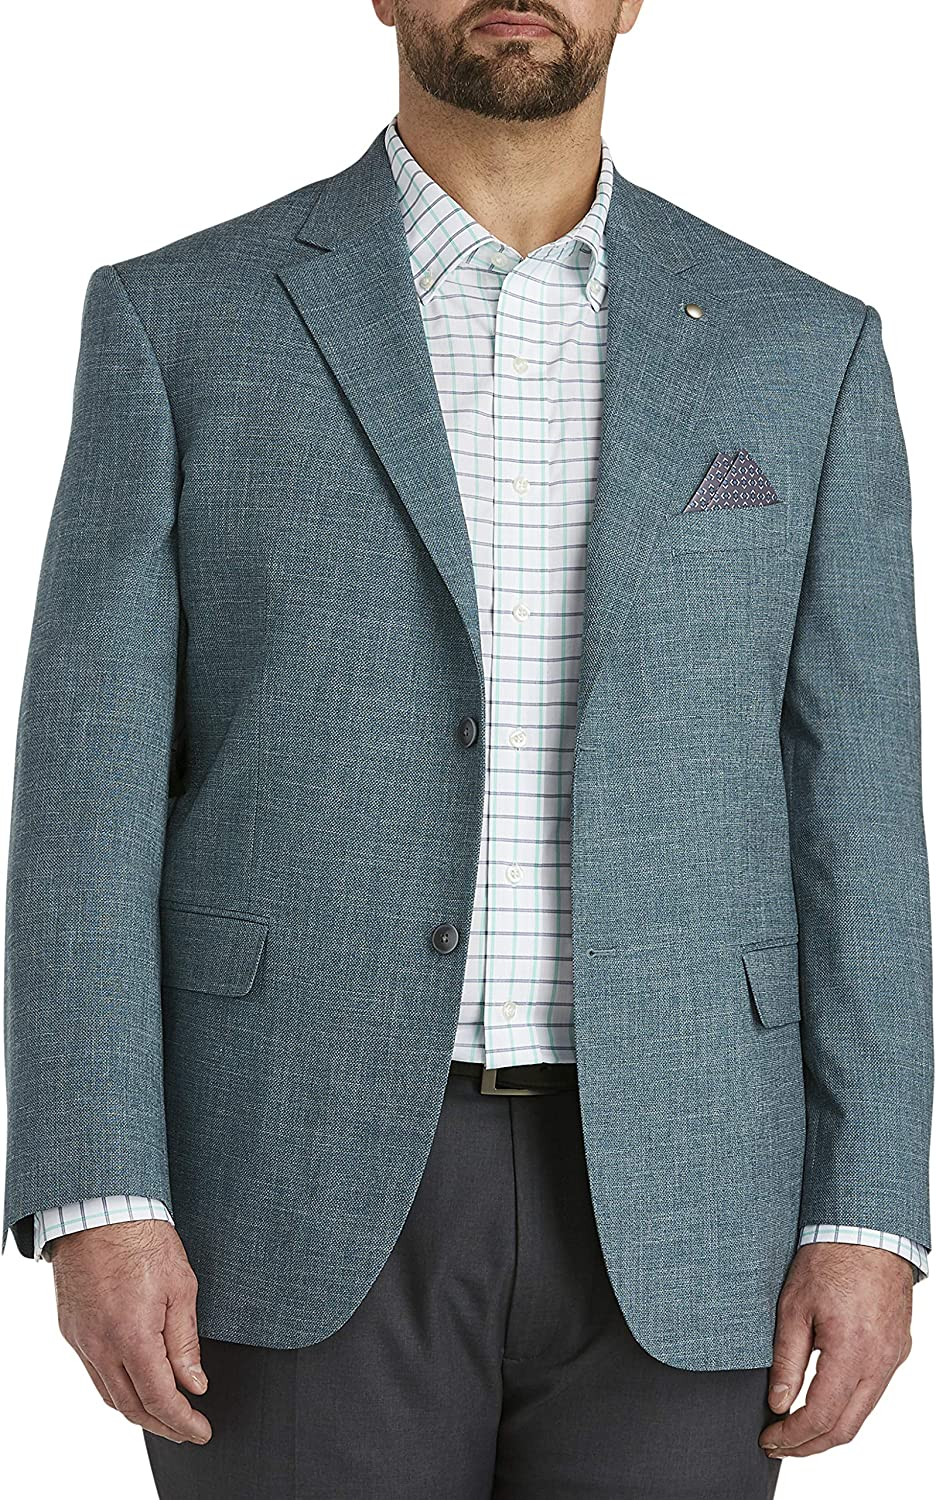 Oak Hill by DXL Big and Tall Jacket-Relaxer Textured Solid Sport Coat, Teal